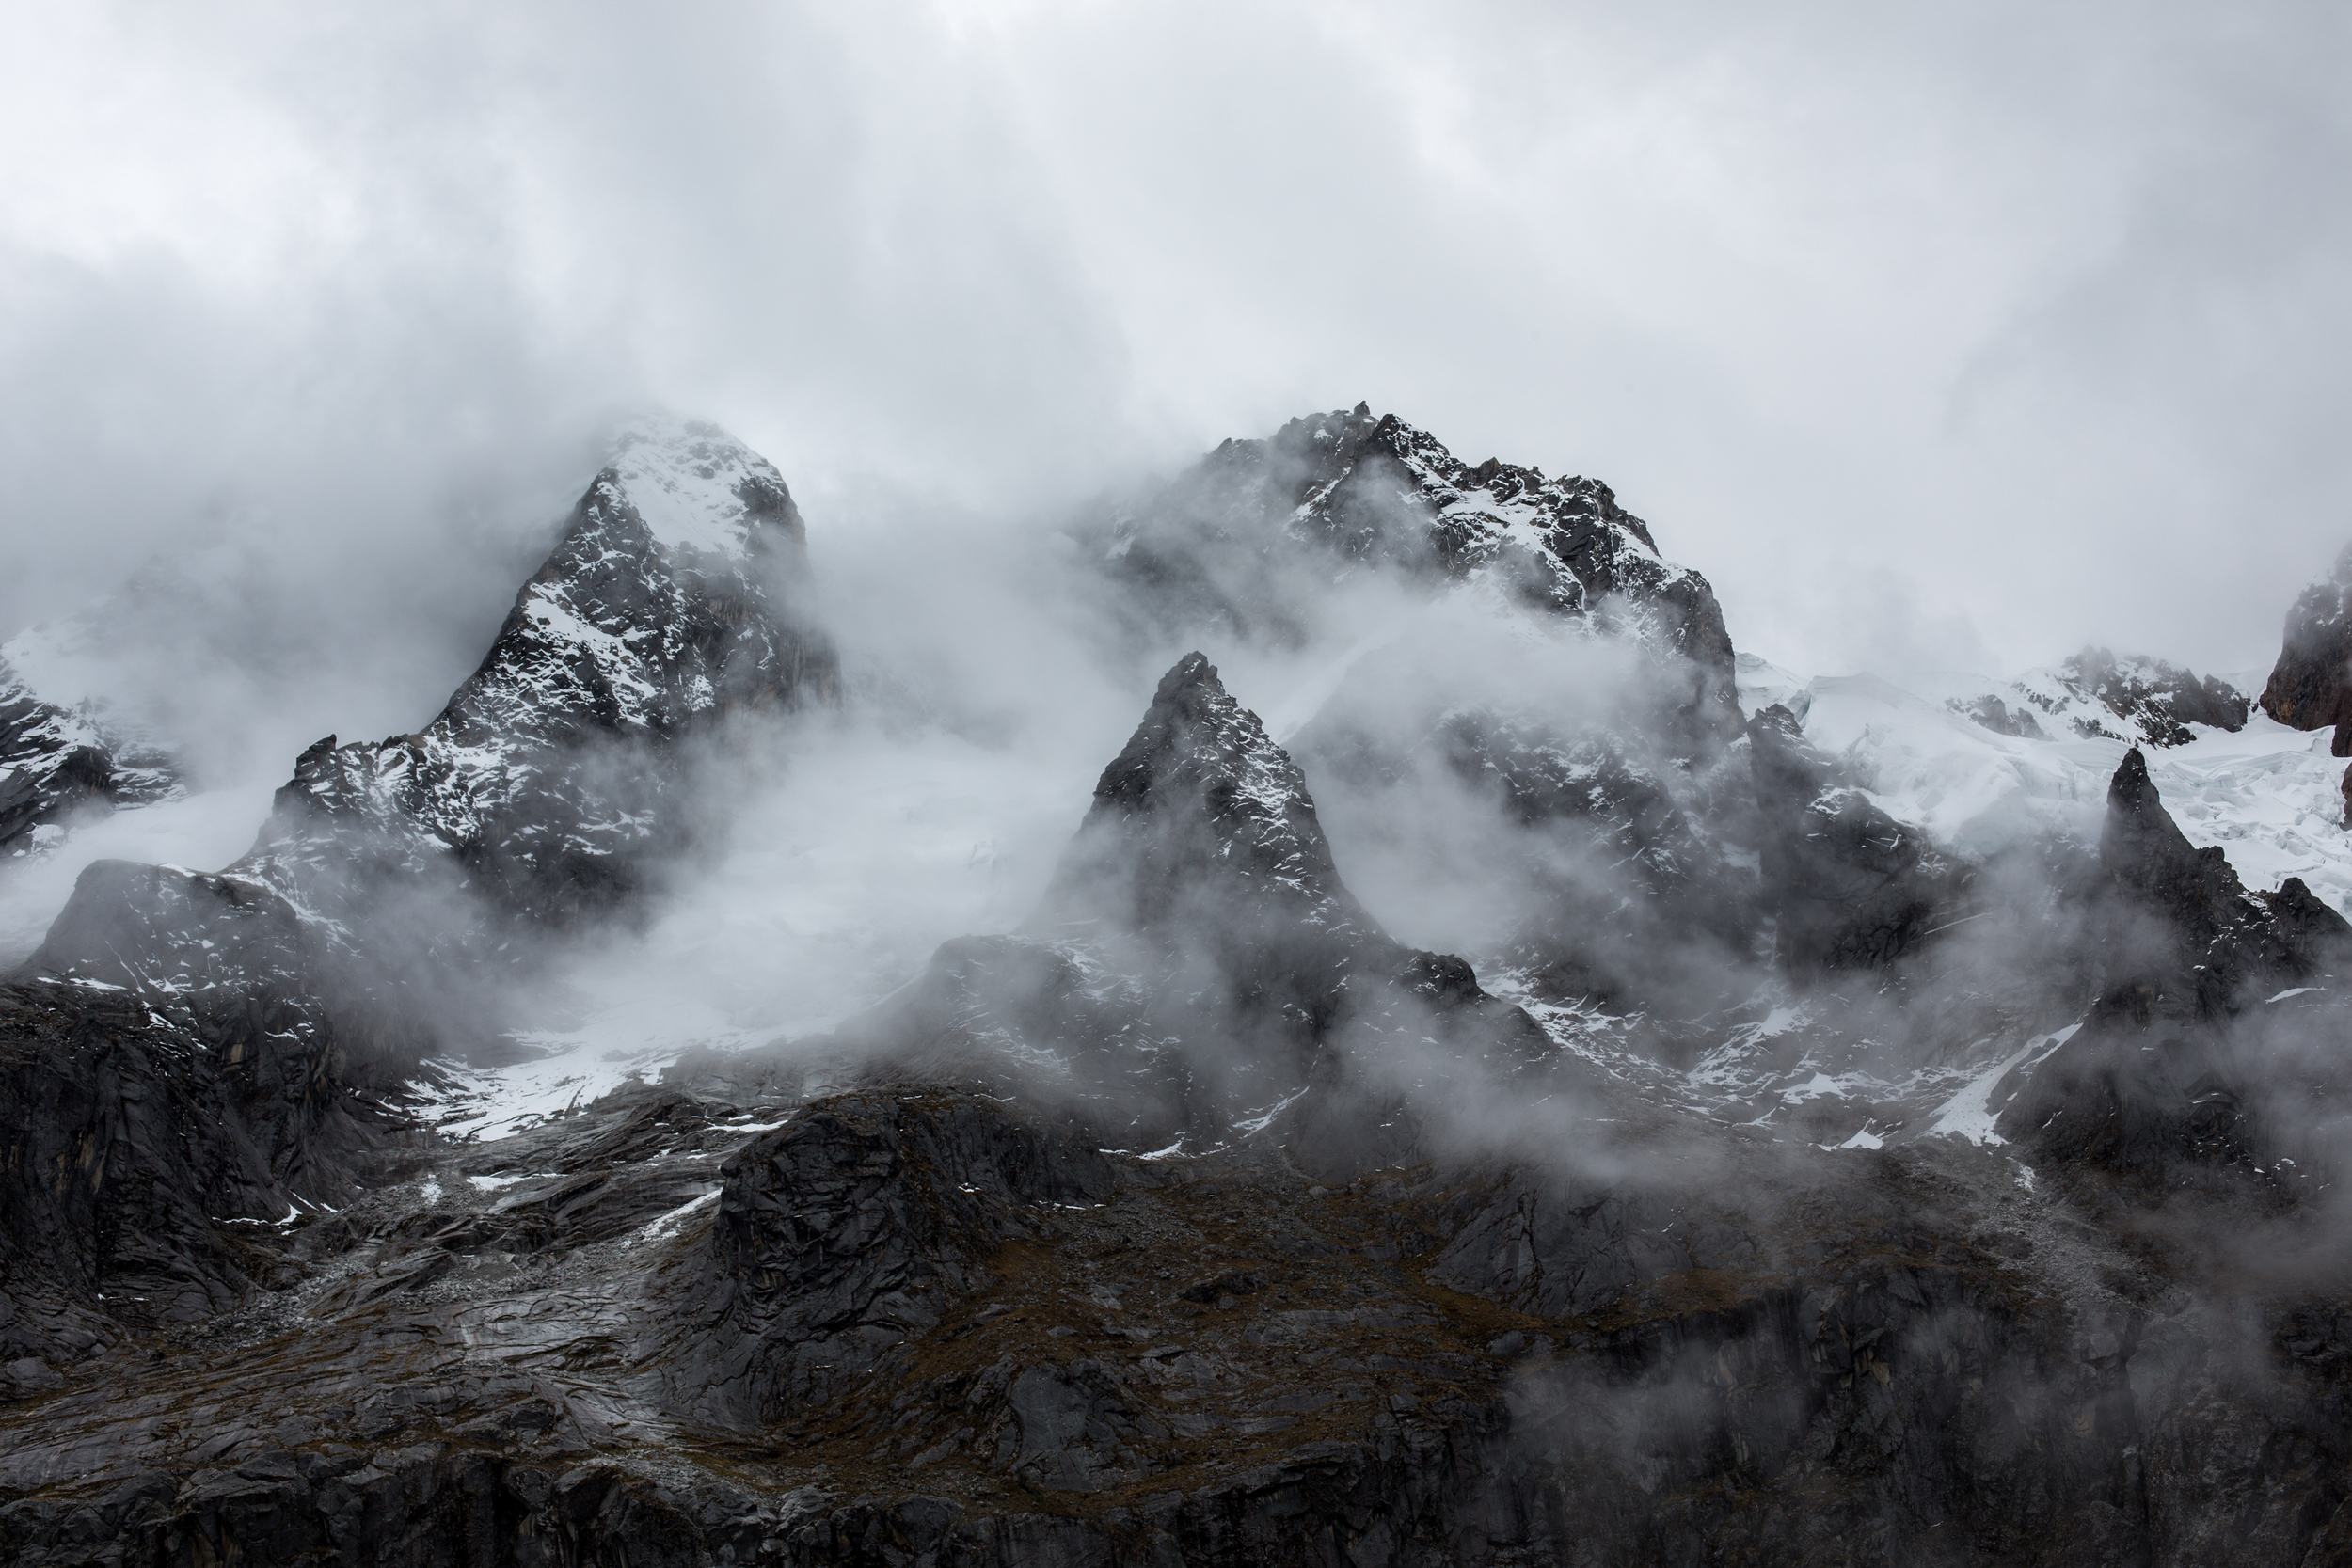 Clouds encircling mountains